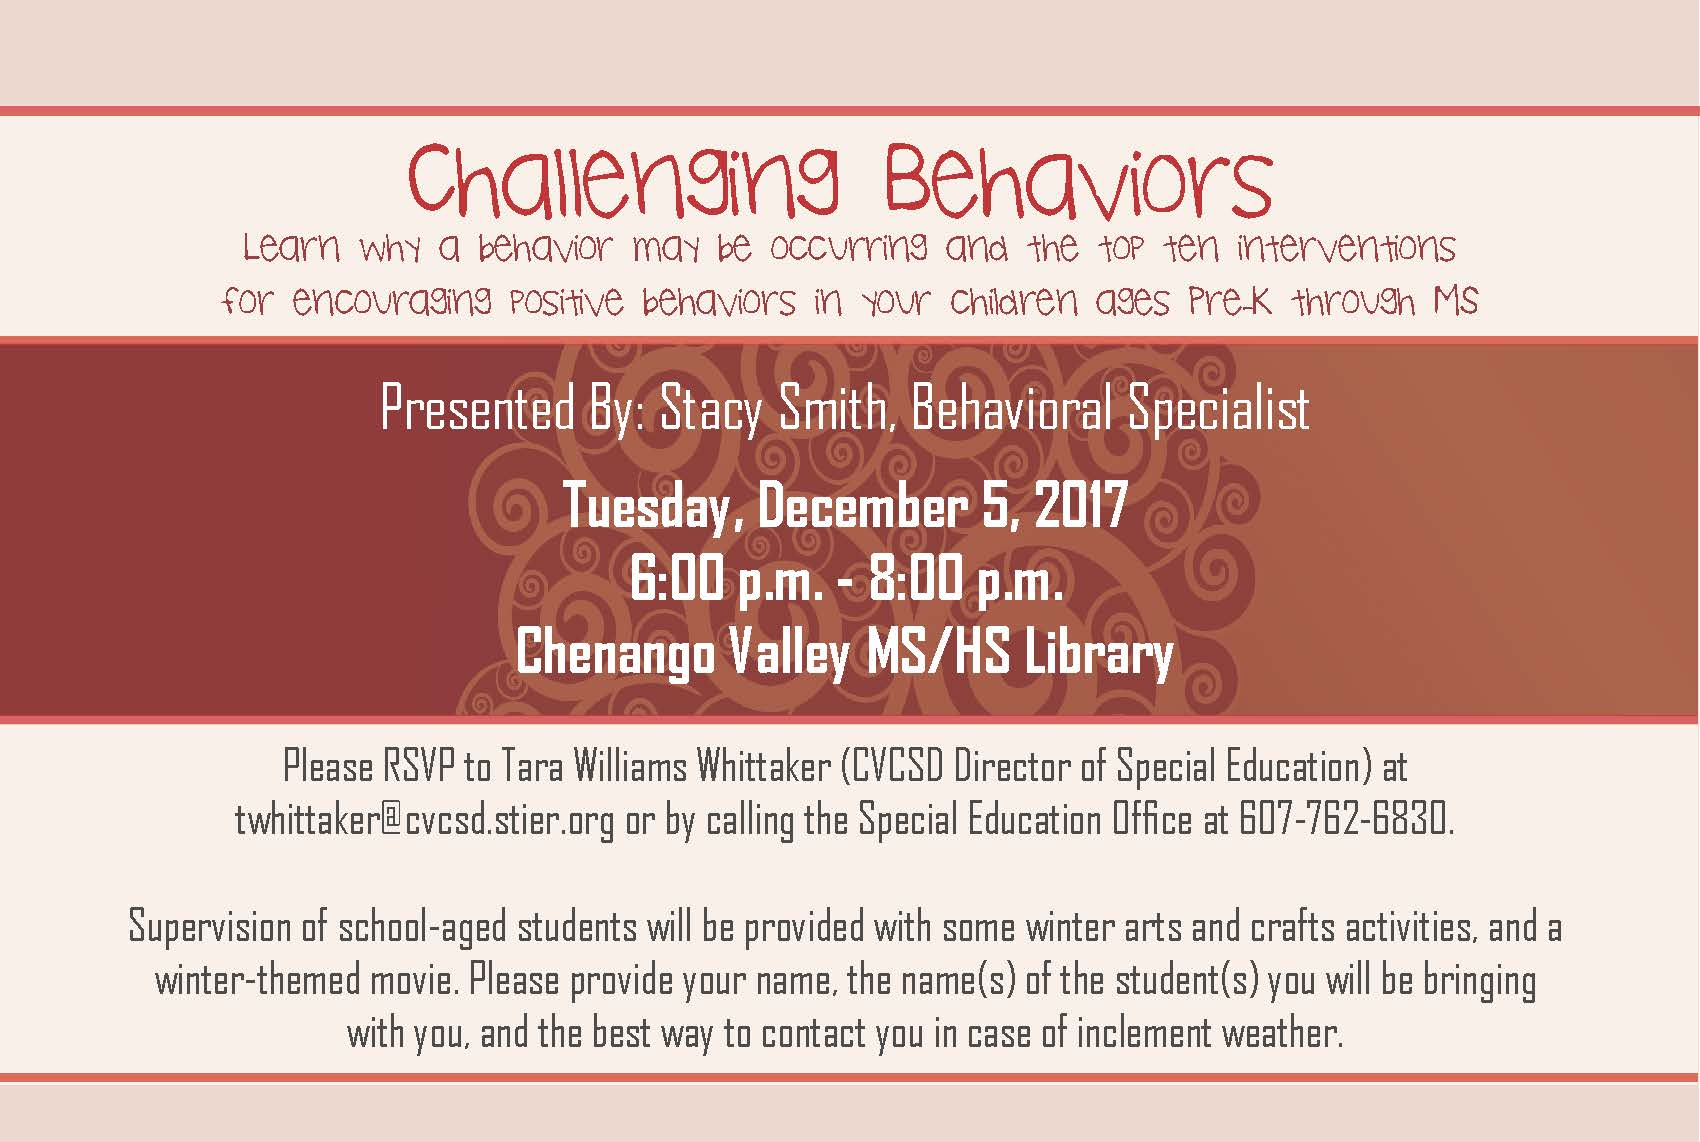 challenging behaviors flyer. program presented by behavioral specialist stacy smith. tuesday december fifth from 6 to 8 p m in the chenango valley high school library child care is available r s v p to tara whittaker at 7 6 2 6 8 3 0 prior to the event